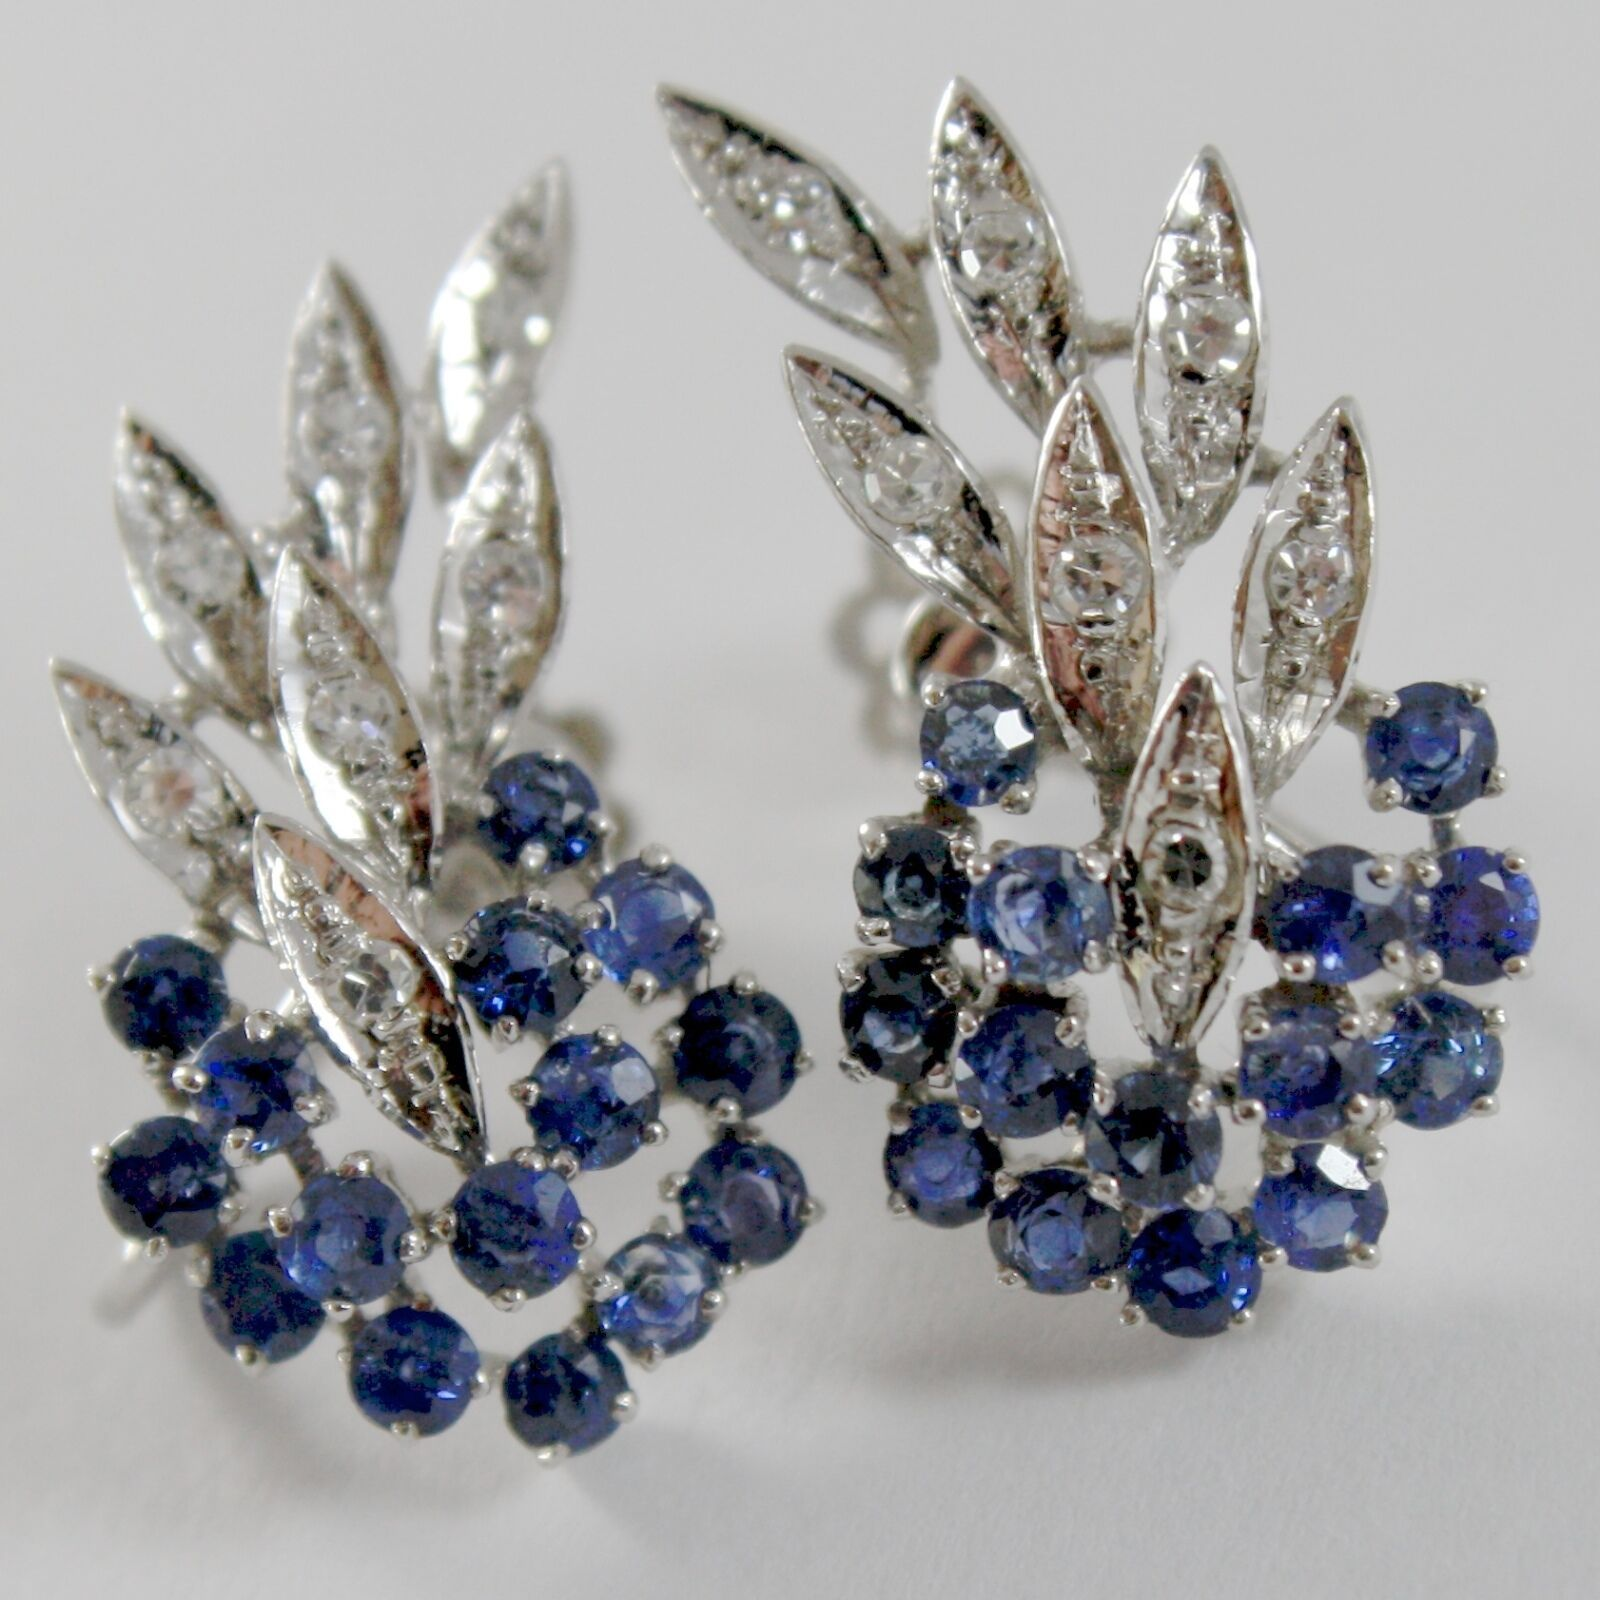 SOLID 18K WHITE GOLD FLOWER, LEAVES SCREW BACK EARRINGS WITH DIAMONDS SAPPHIRES